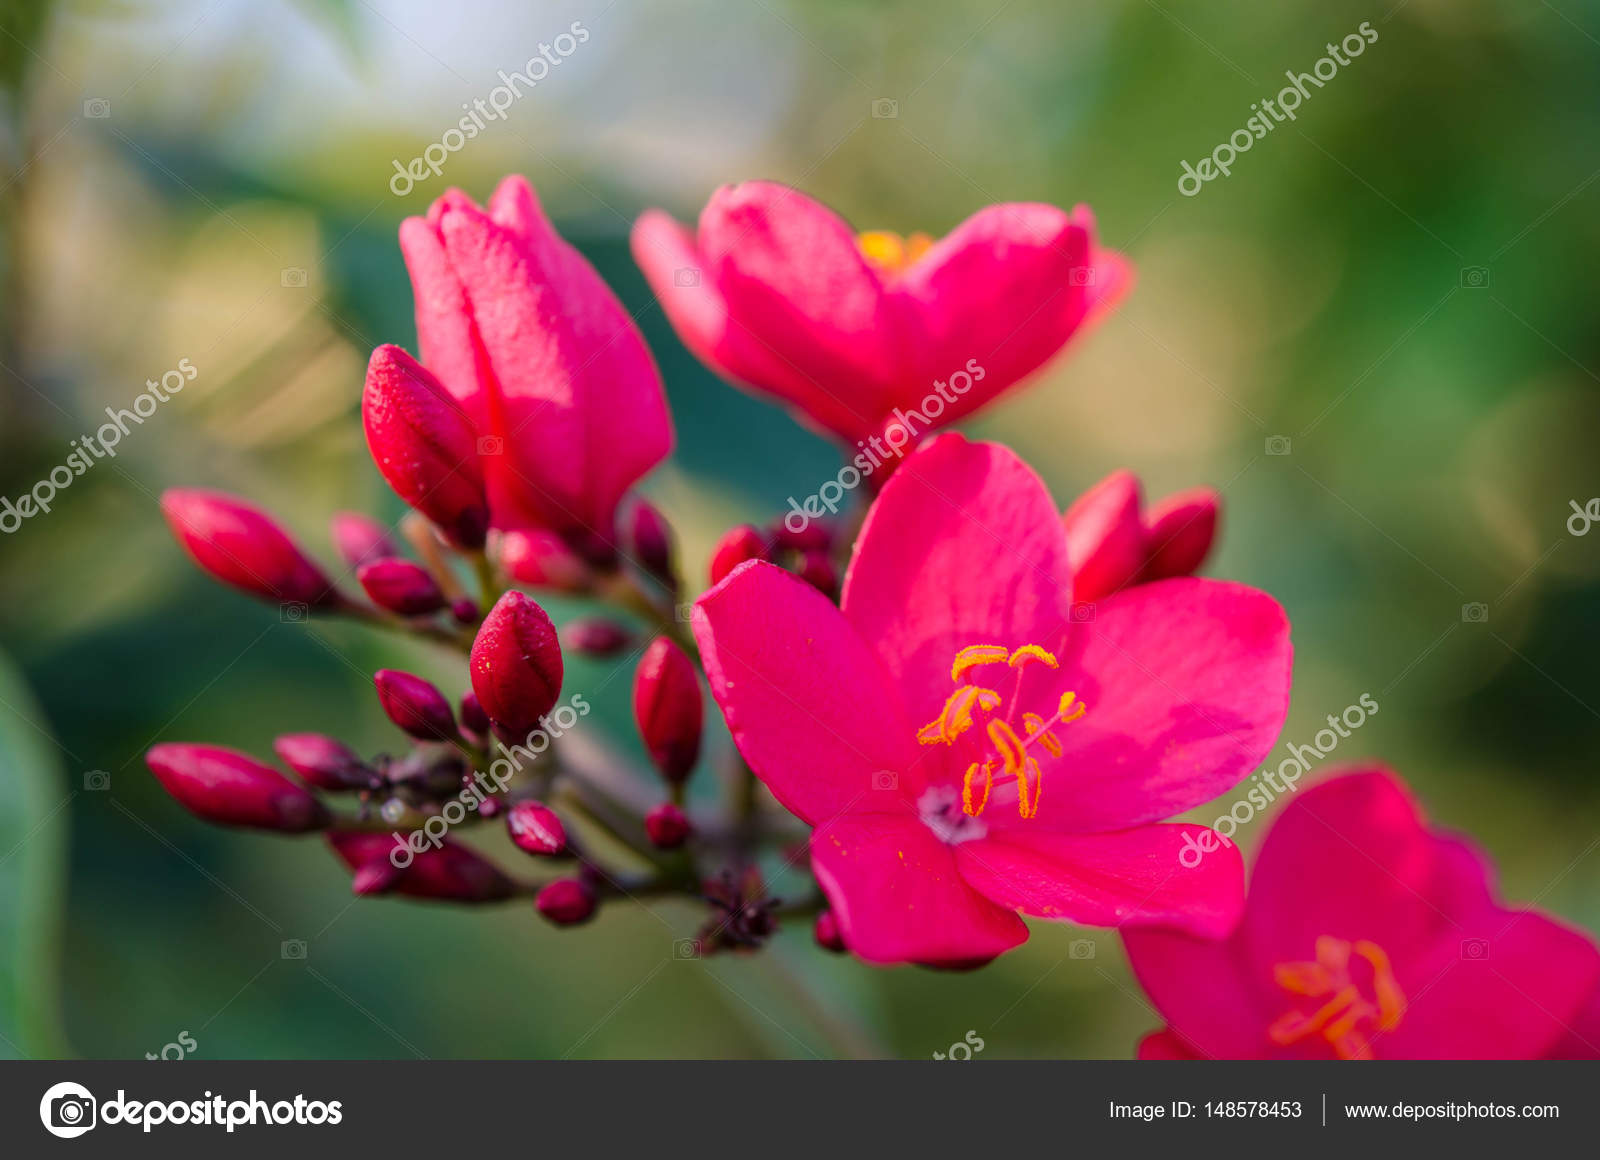 Flowering Bushes With Pink Flowers Stock Photo Soyka564 148578453